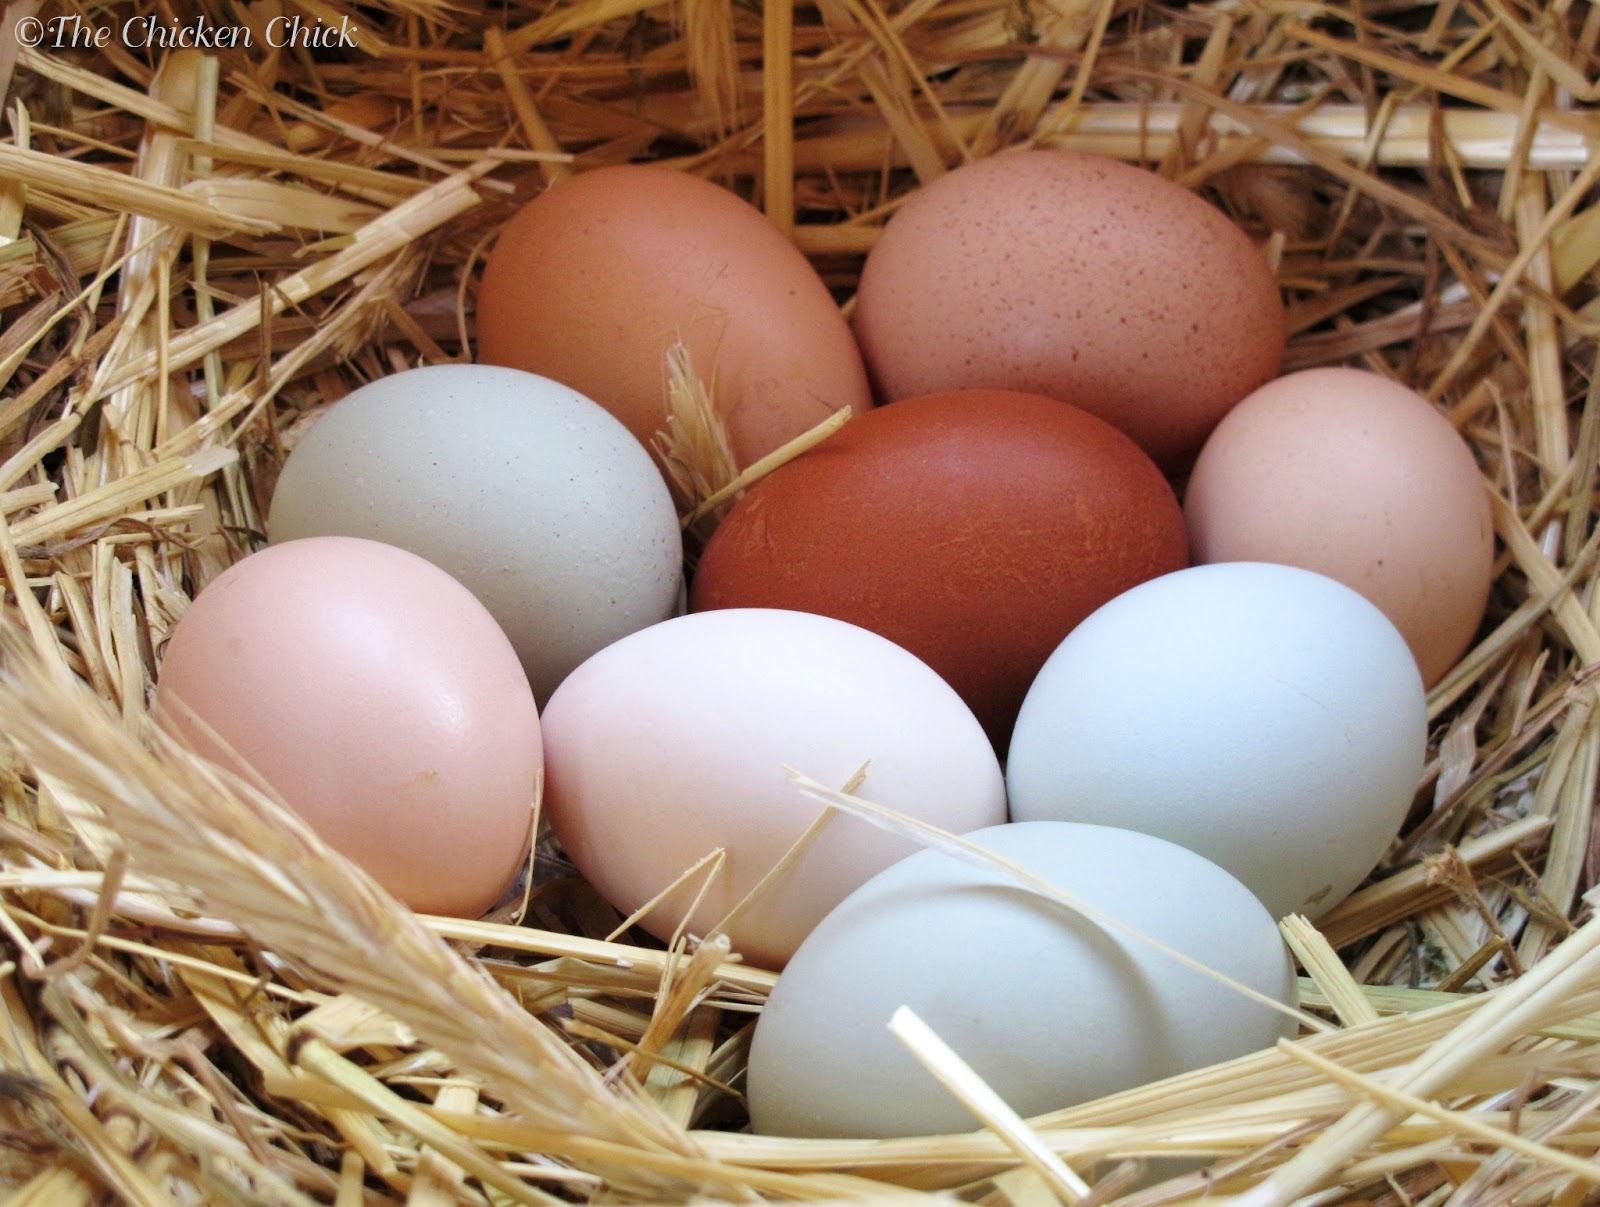 cool egg facts video of hen laying an egg community chickens. Black Bedroom Furniture Sets. Home Design Ideas